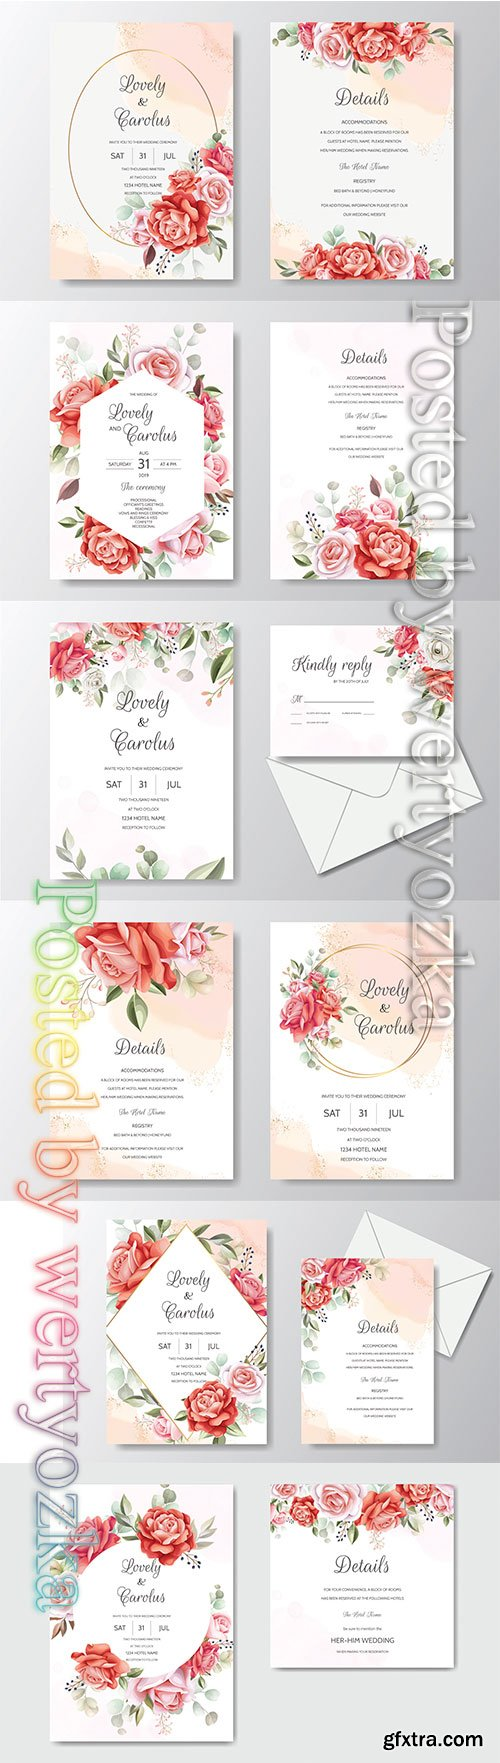 Beautiful floral wreath wedding invitation card template # 5